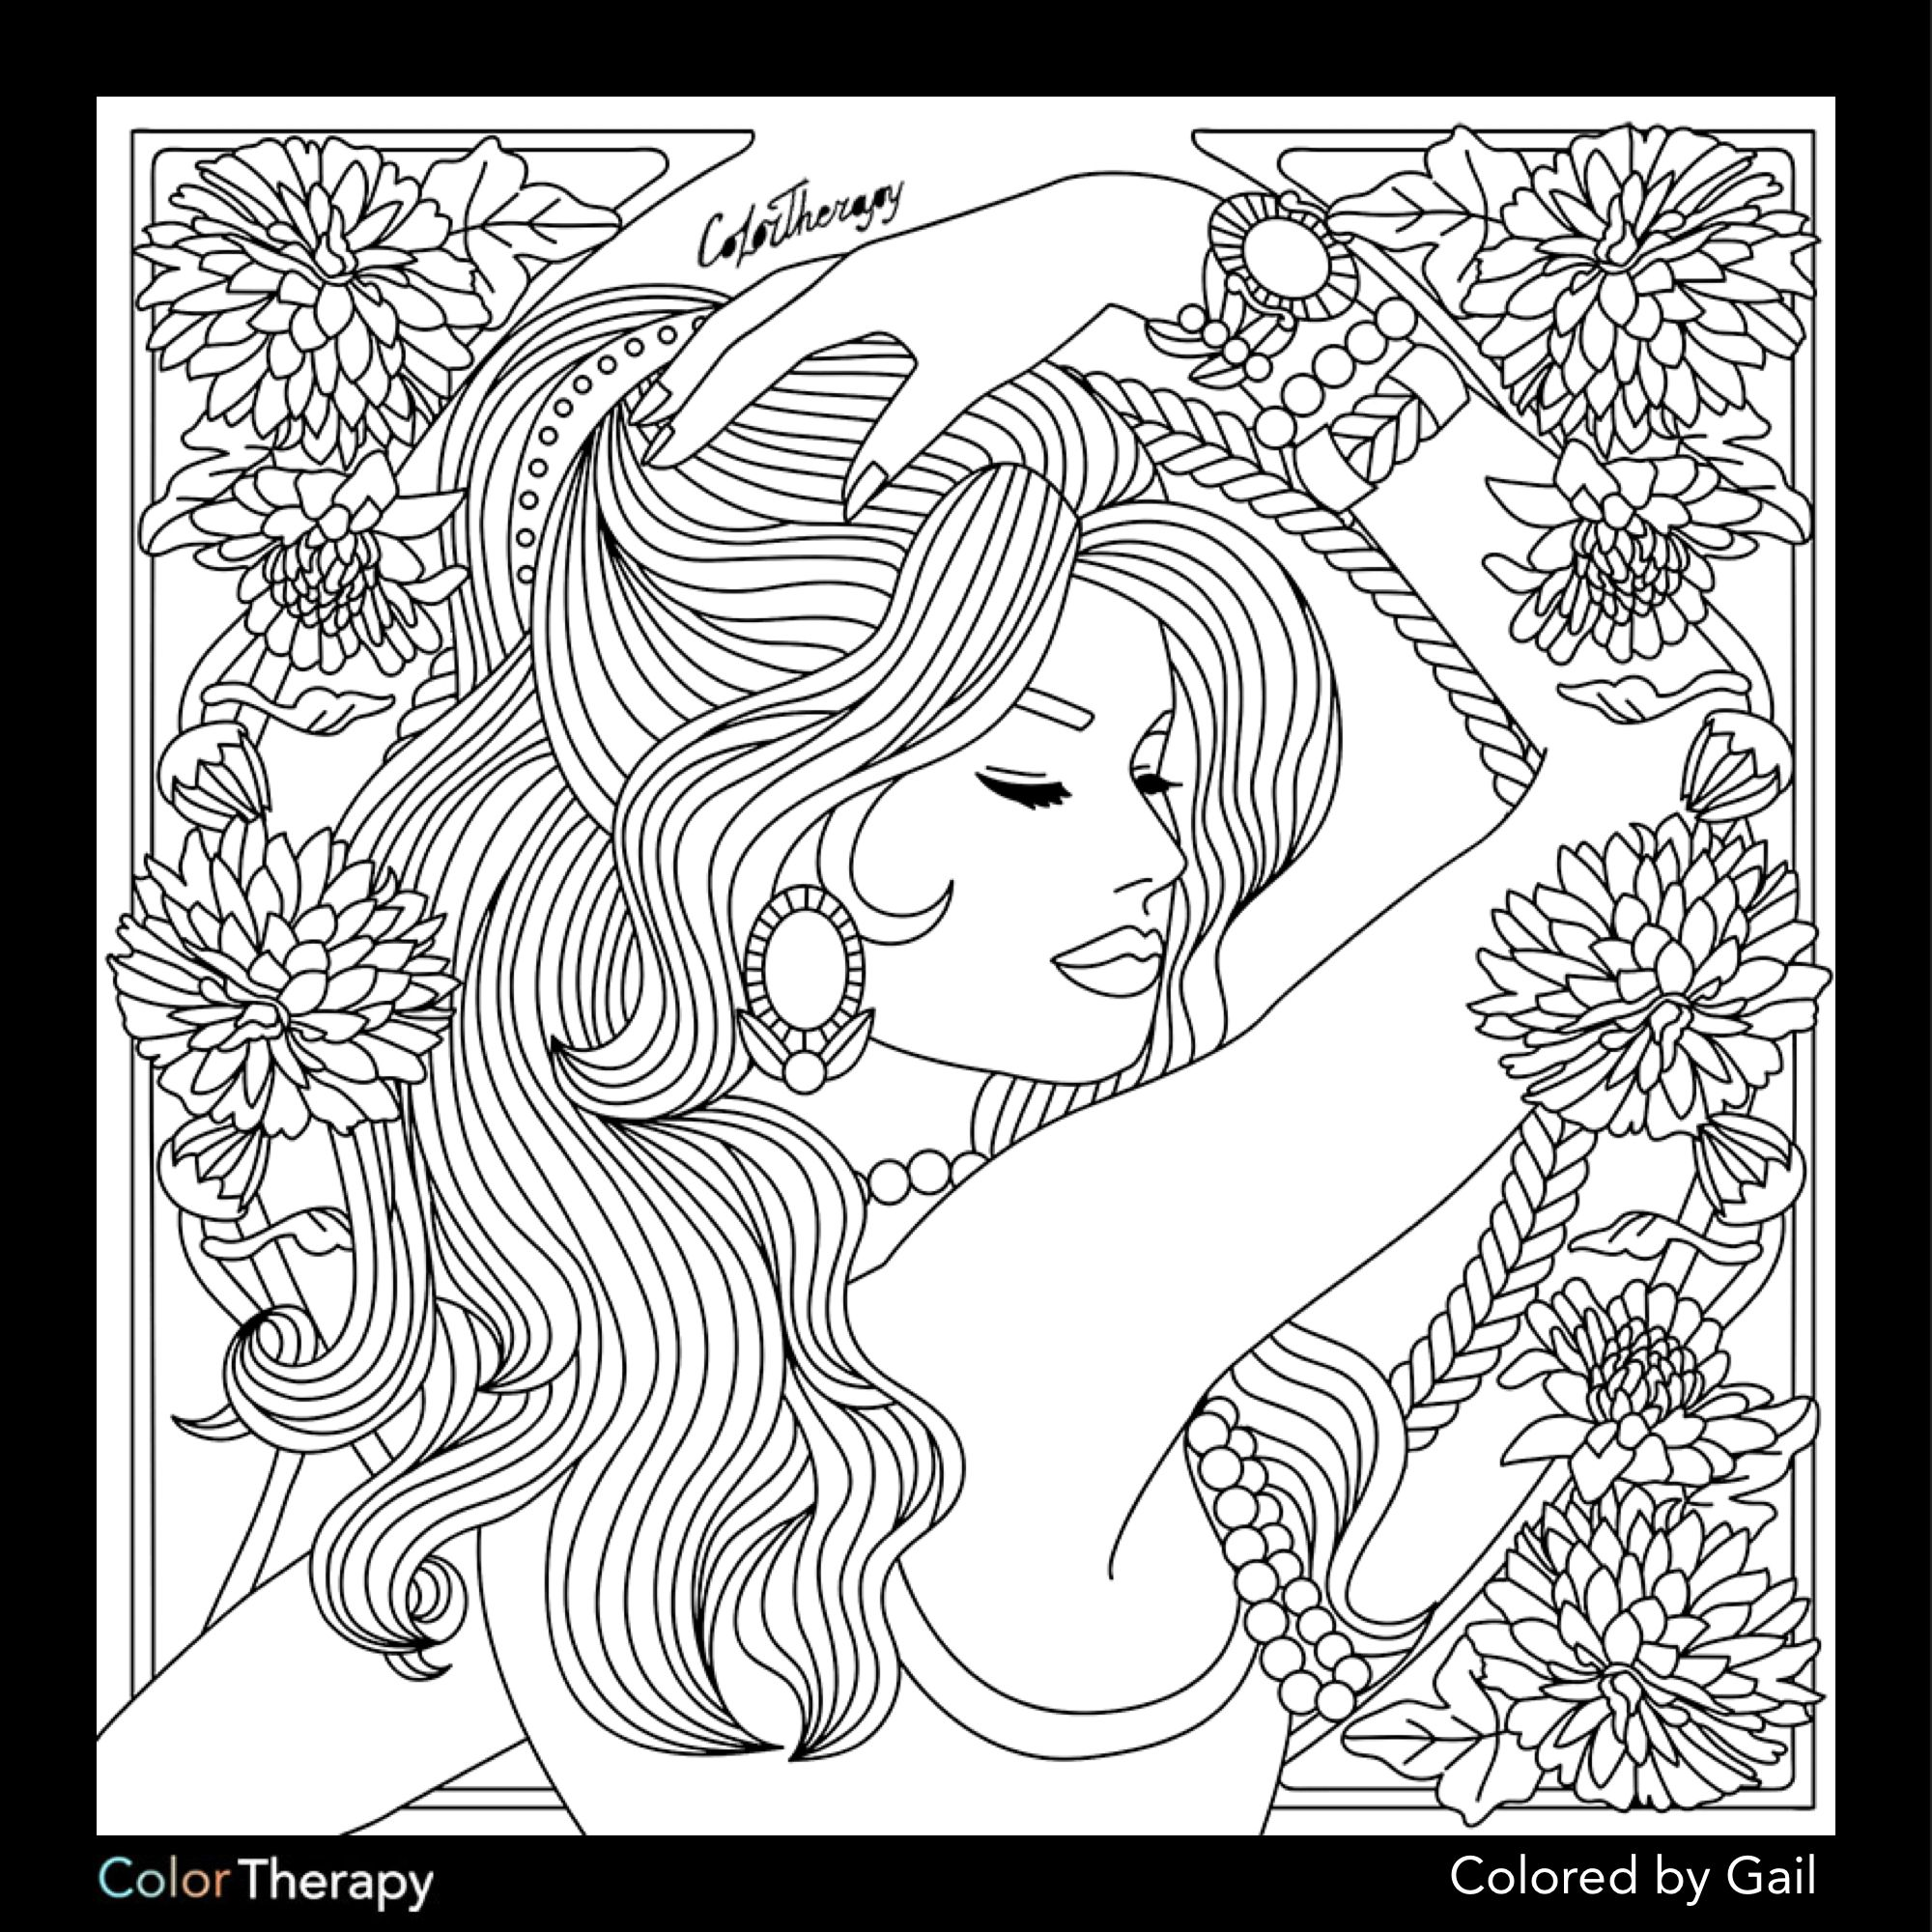 I Colored This Myself Using Color Therapy App It Was So Fun And Relaxing And It S Free Coloring Pages Color Therapy Coloring Books